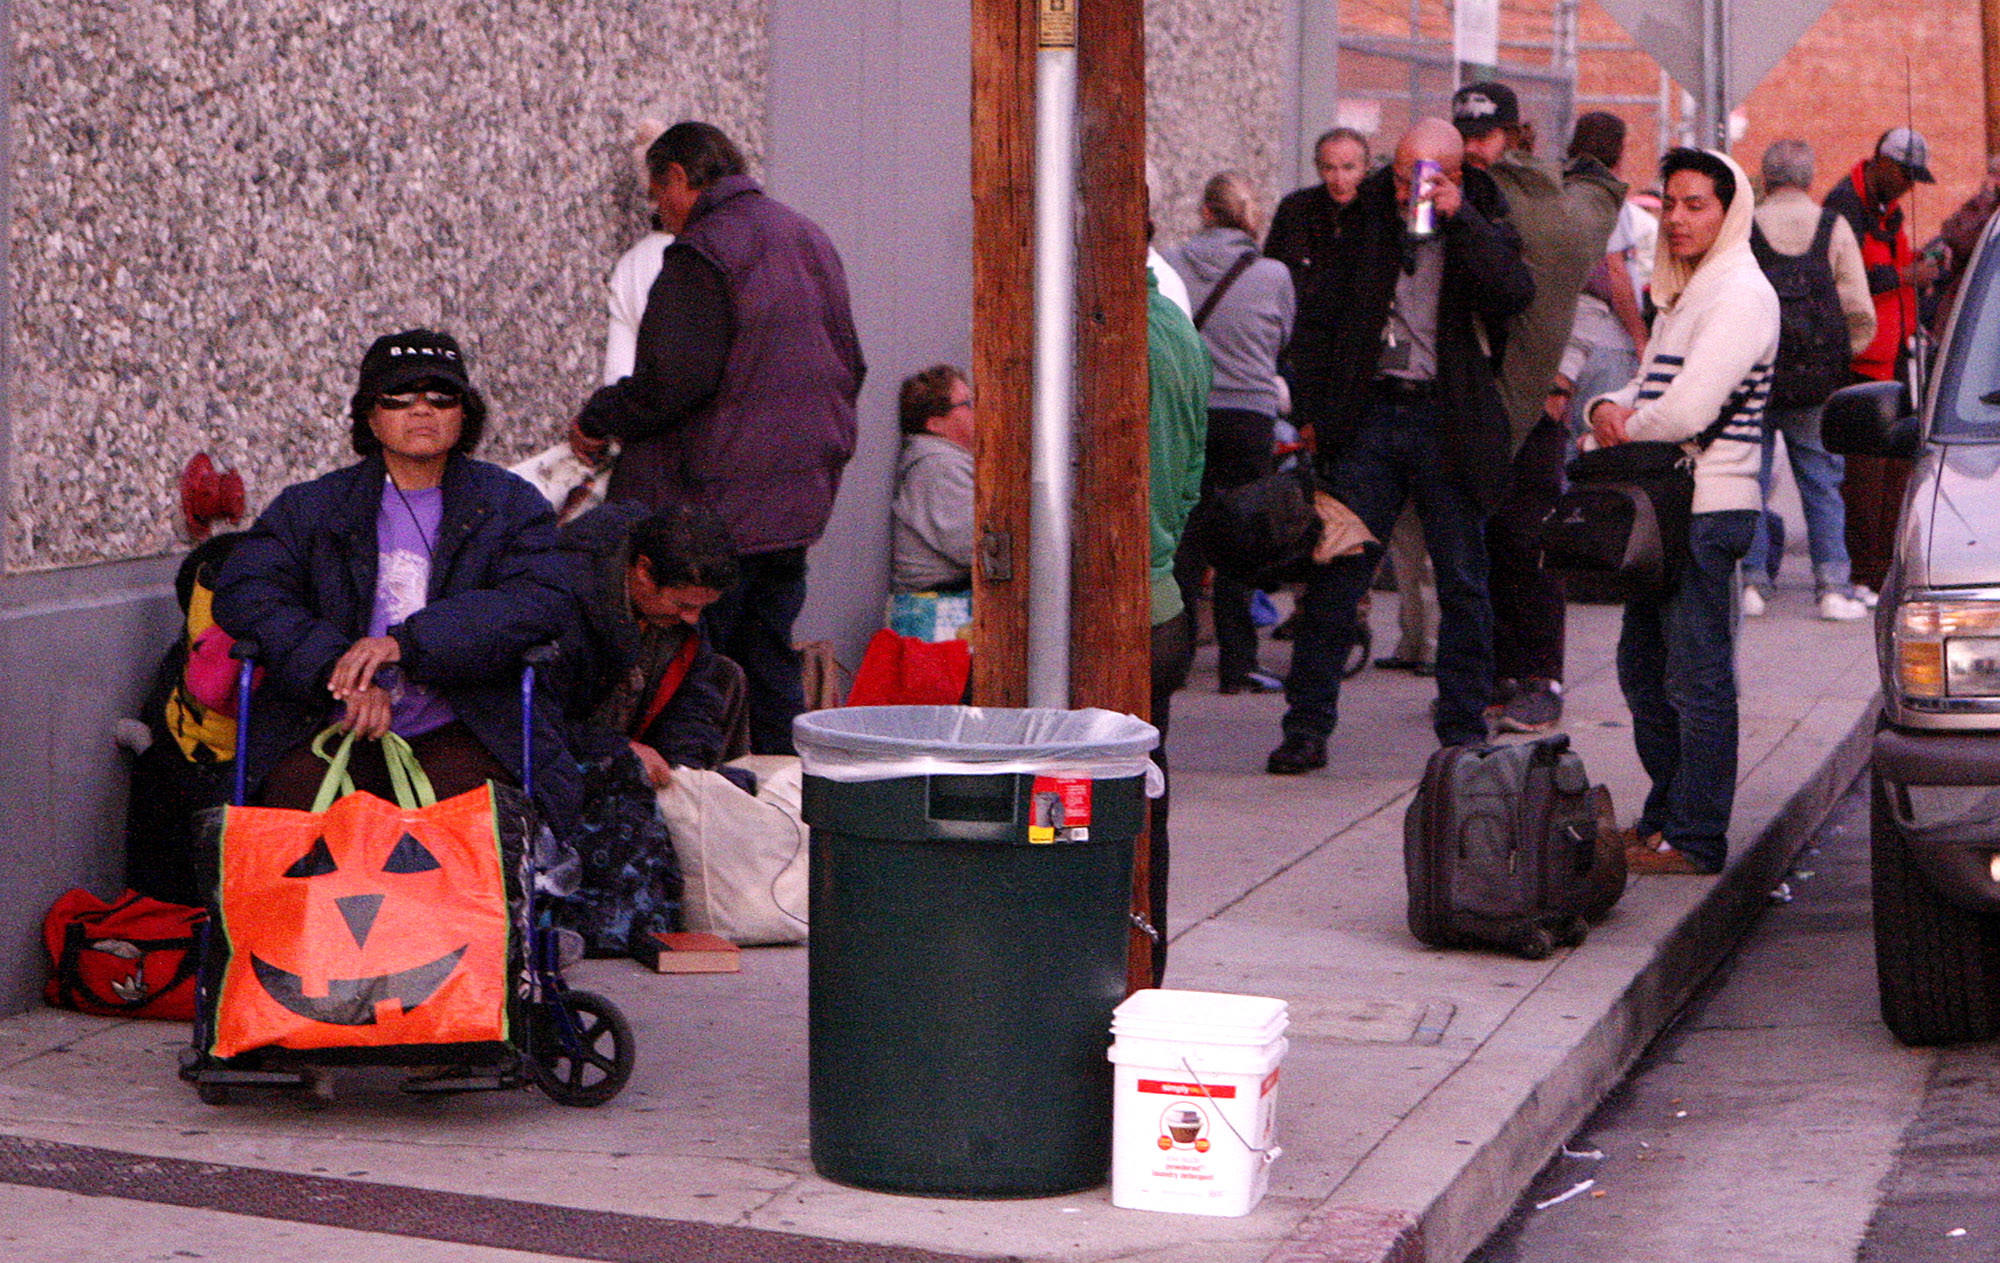 People wait in line for the shelter to open at Ascencia in Glendale for the Glendale Winter Shelter Program on Monday, December 2, 2013.